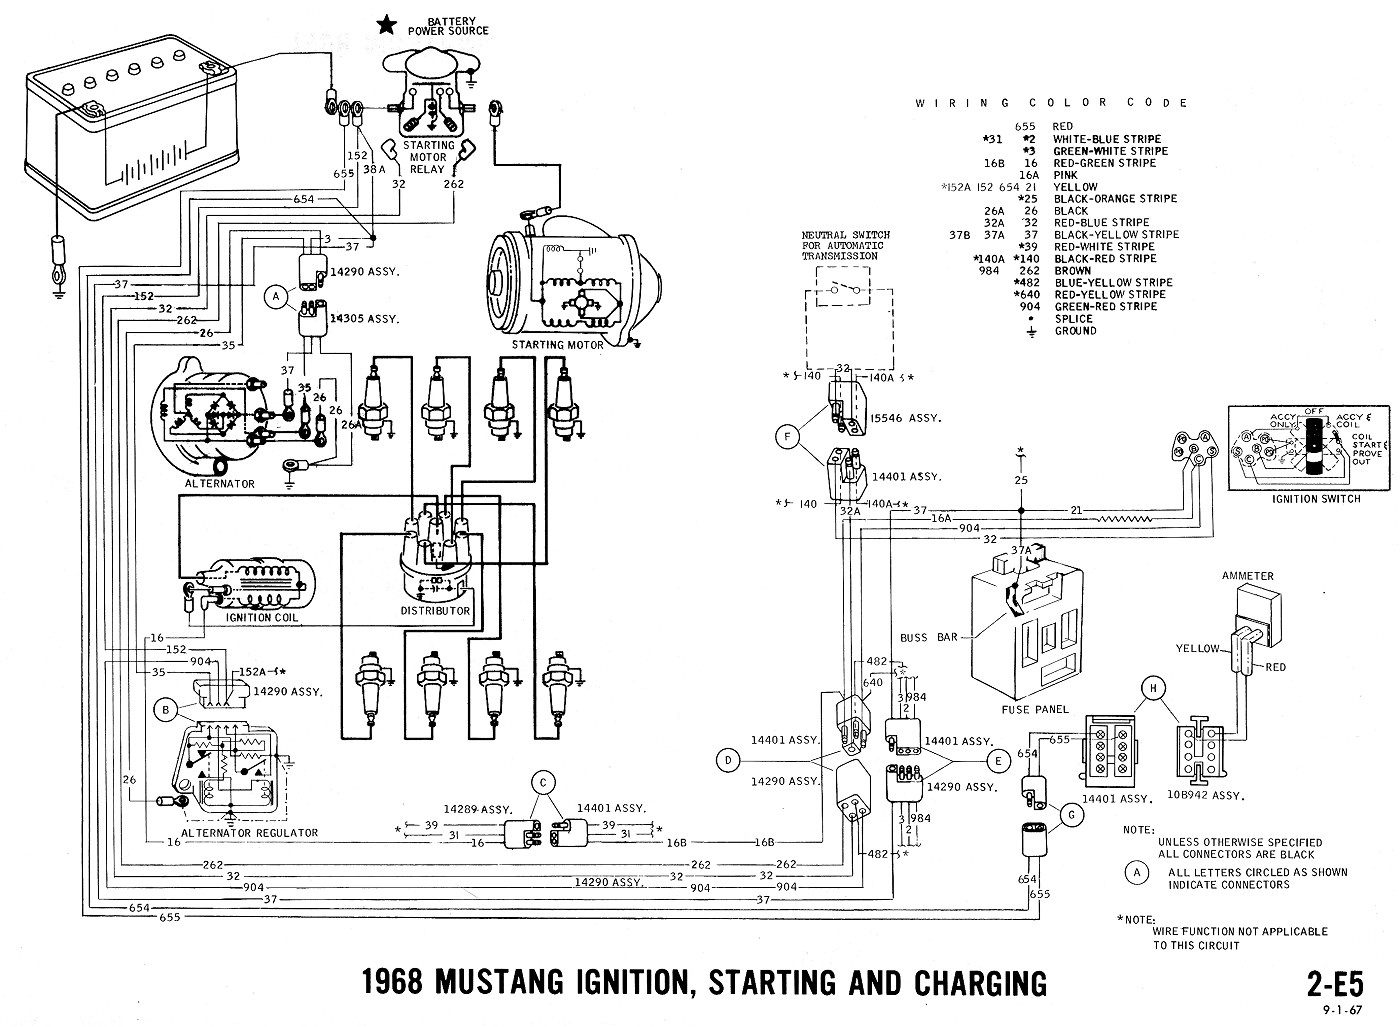 E5 1968 mustang wiring diagrams evolving software ford mustang wiring diagram at cos-gaming.co